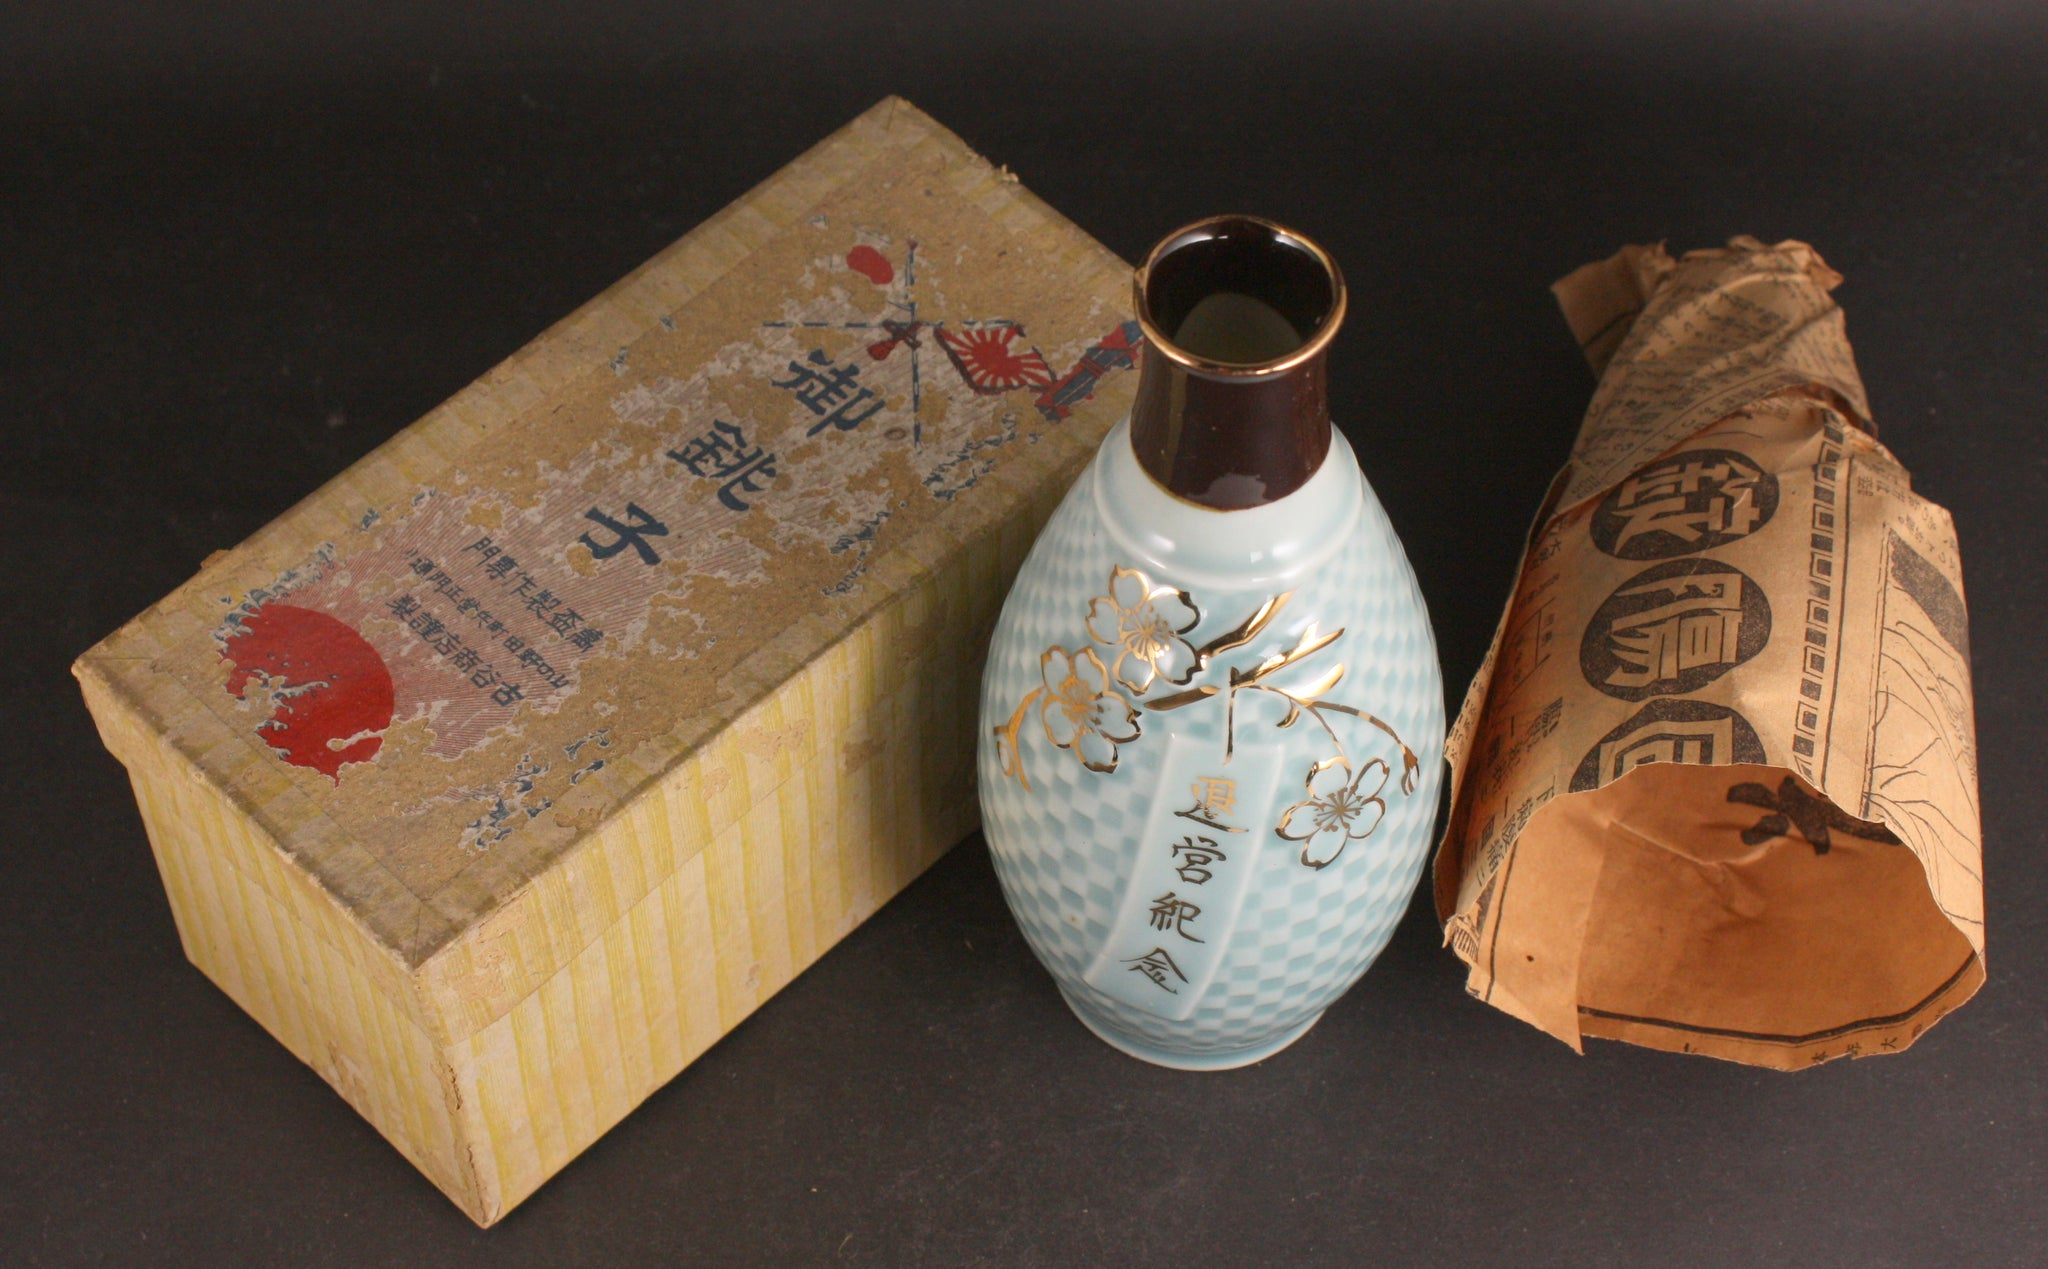 Boxed Antique Japanese Military Infantry Blossoms Army Sake Bottle